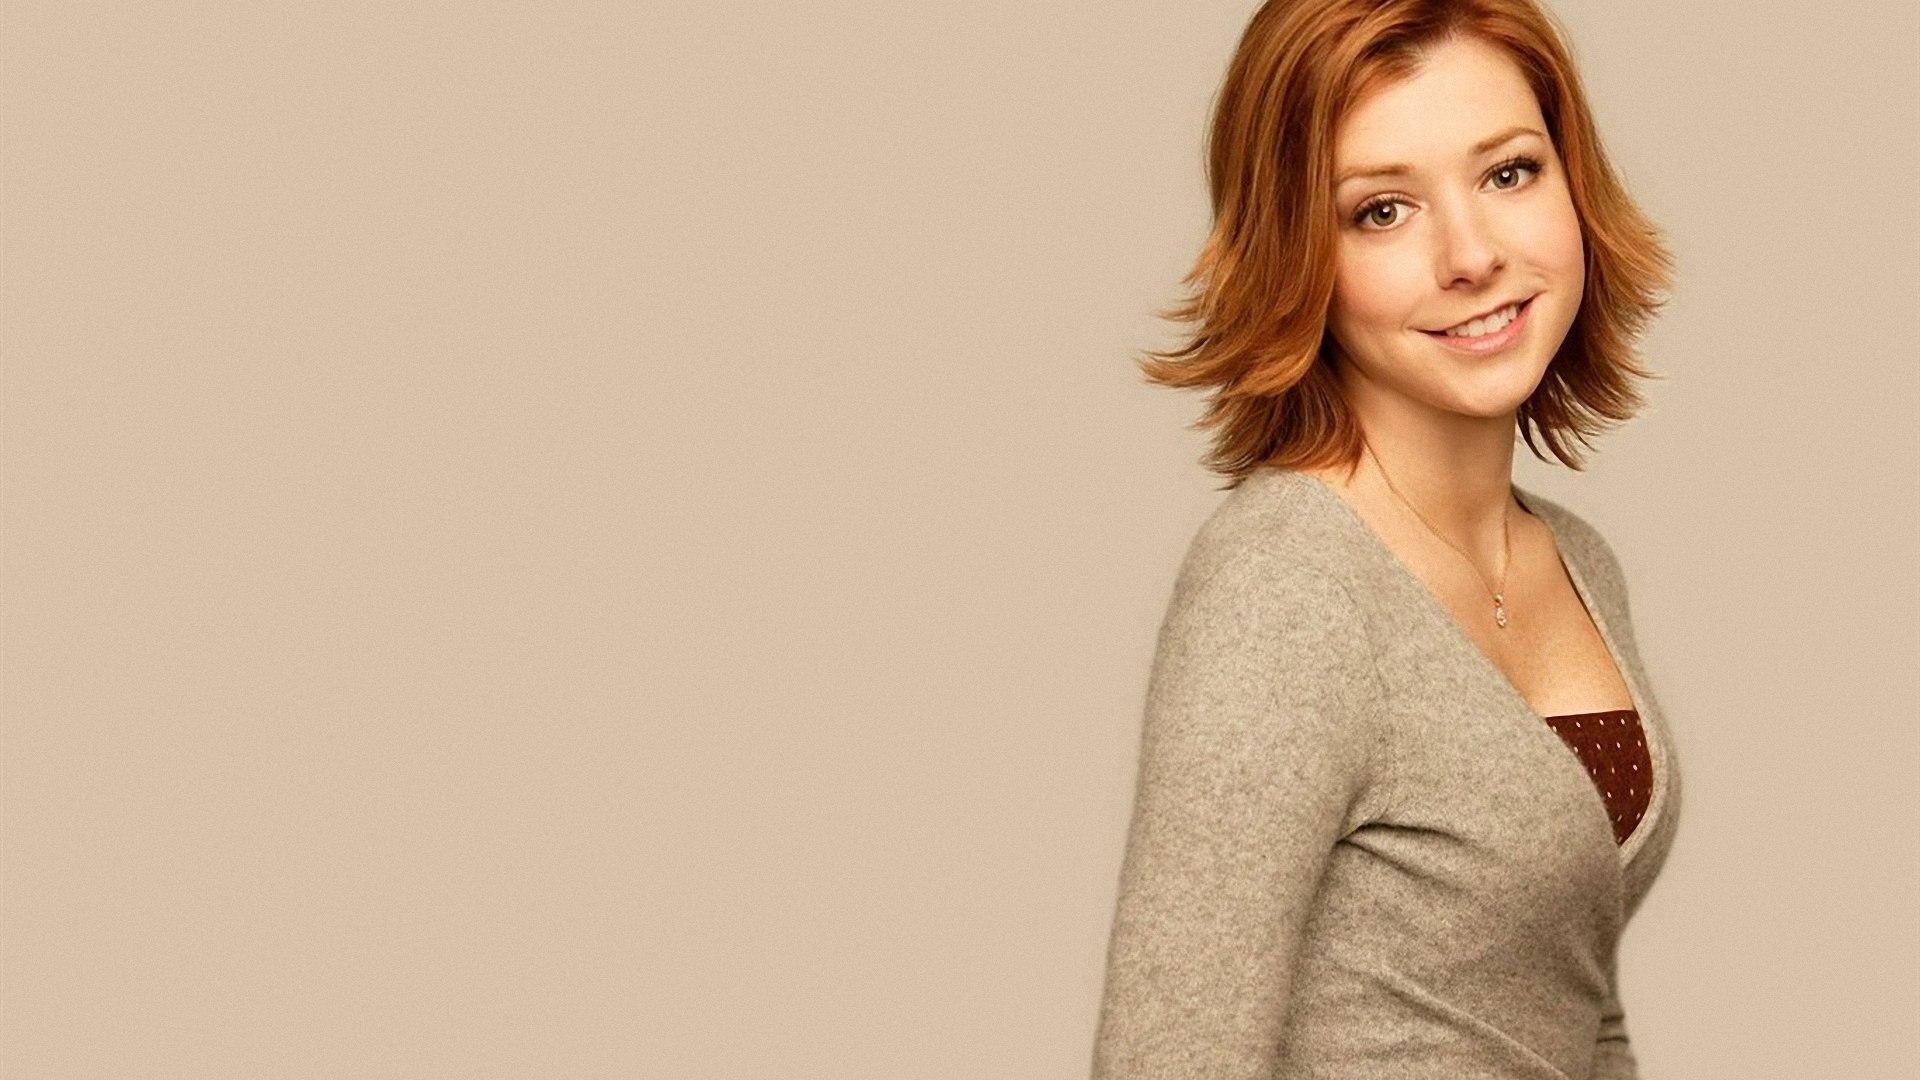 Celebrity Alyson Hannigan naked (85 foto and video), Pussy, Hot, Boobs, cameltoe 2015